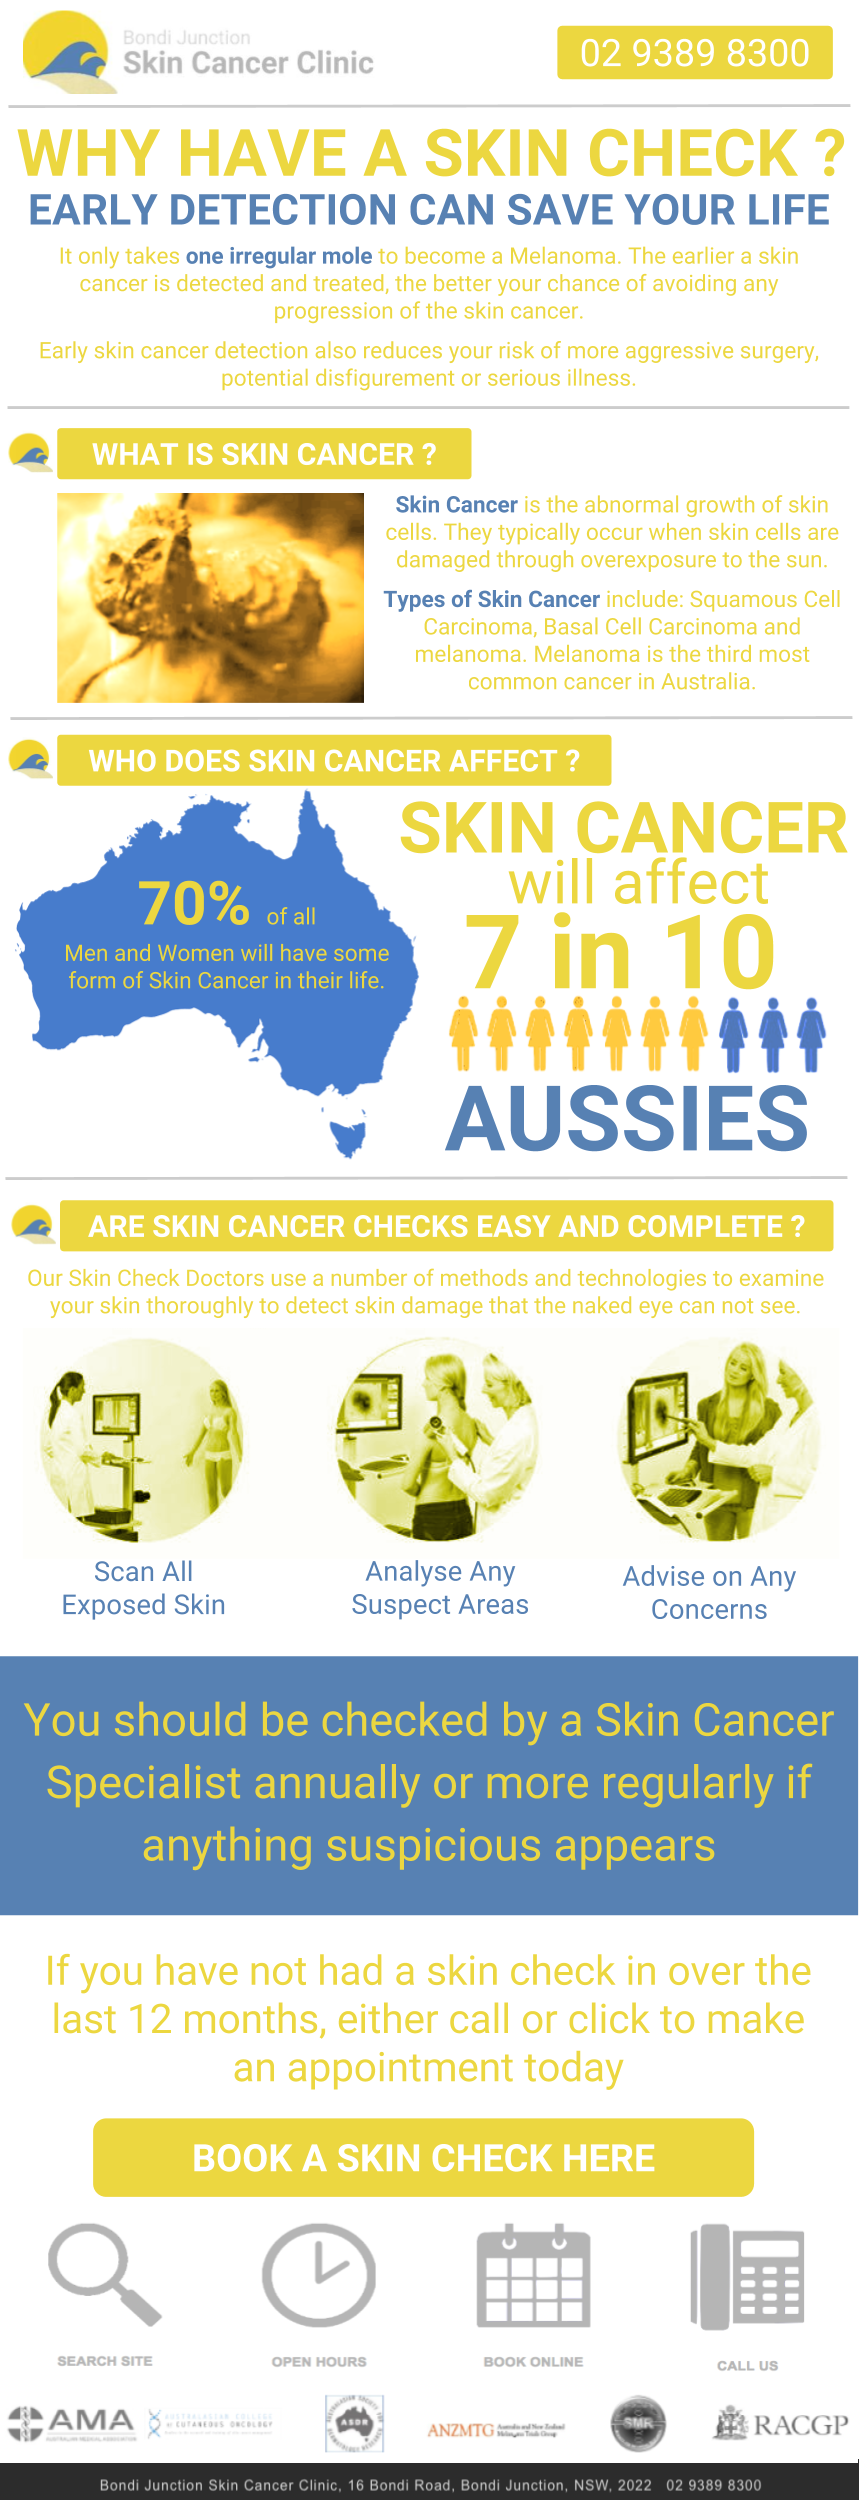 Why Have a Skin Cancer Check IG.png